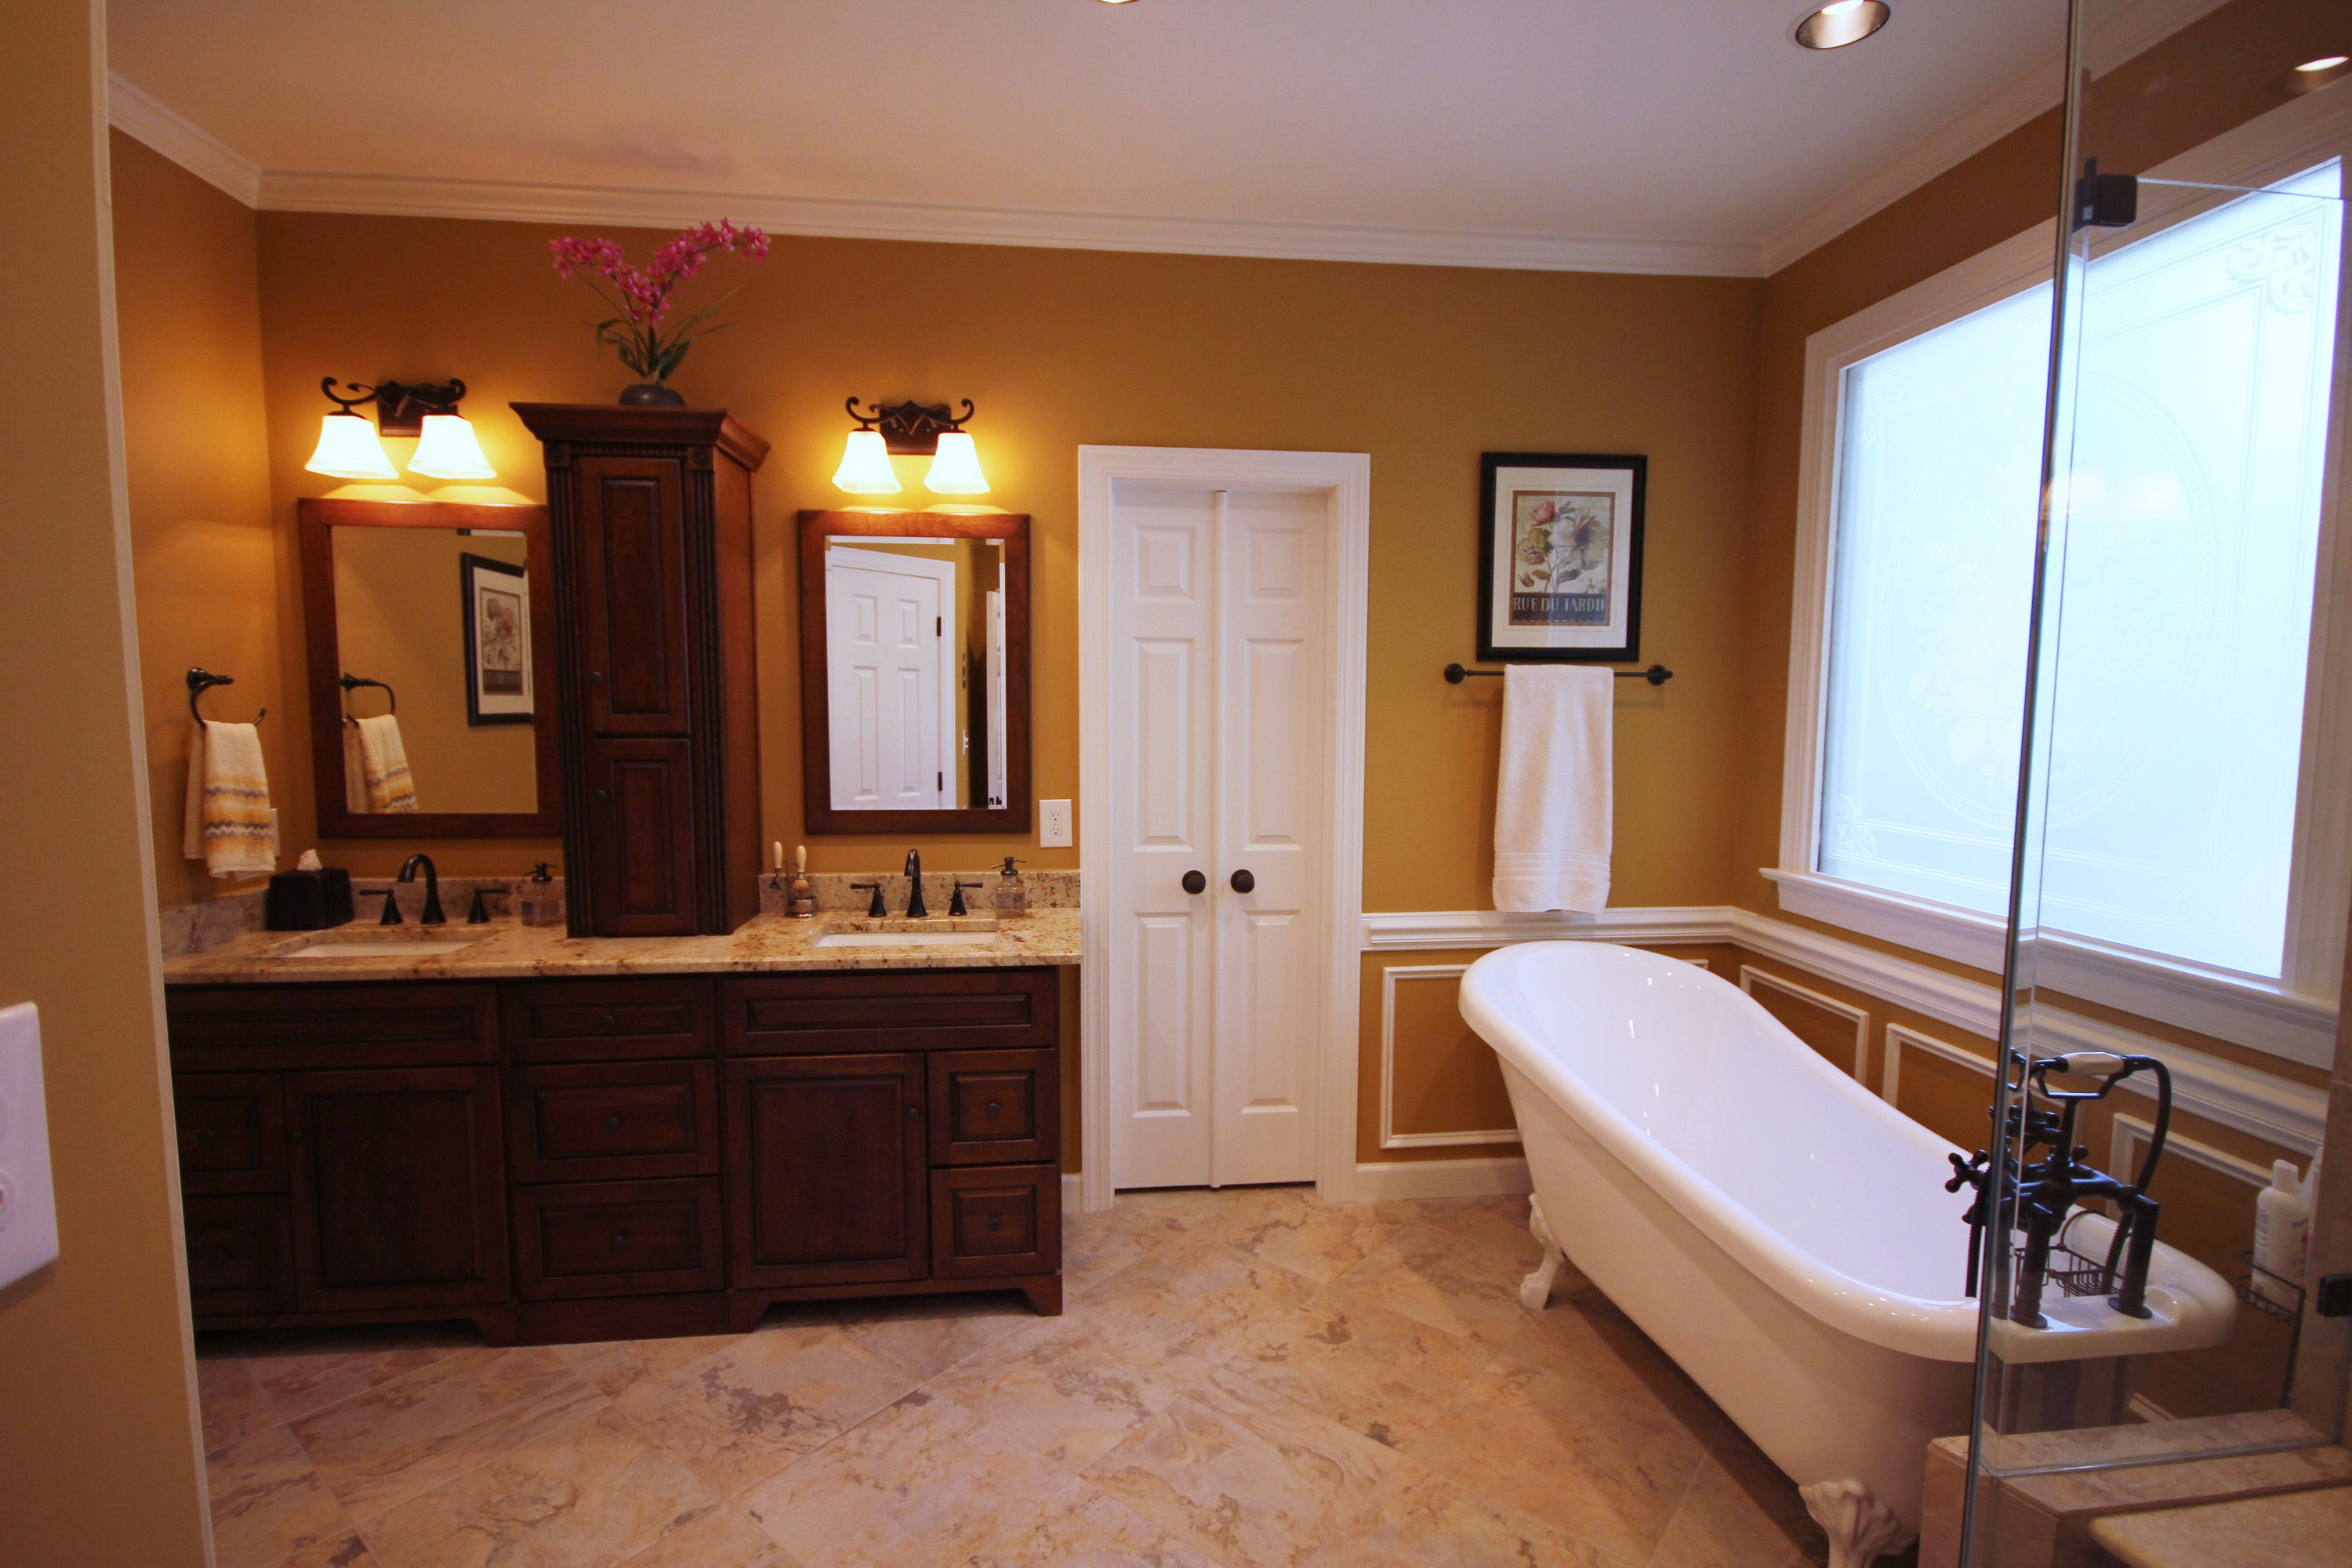 raleigh-bathroom-renovation-companies-8 - The Bath Remodeling Center ...